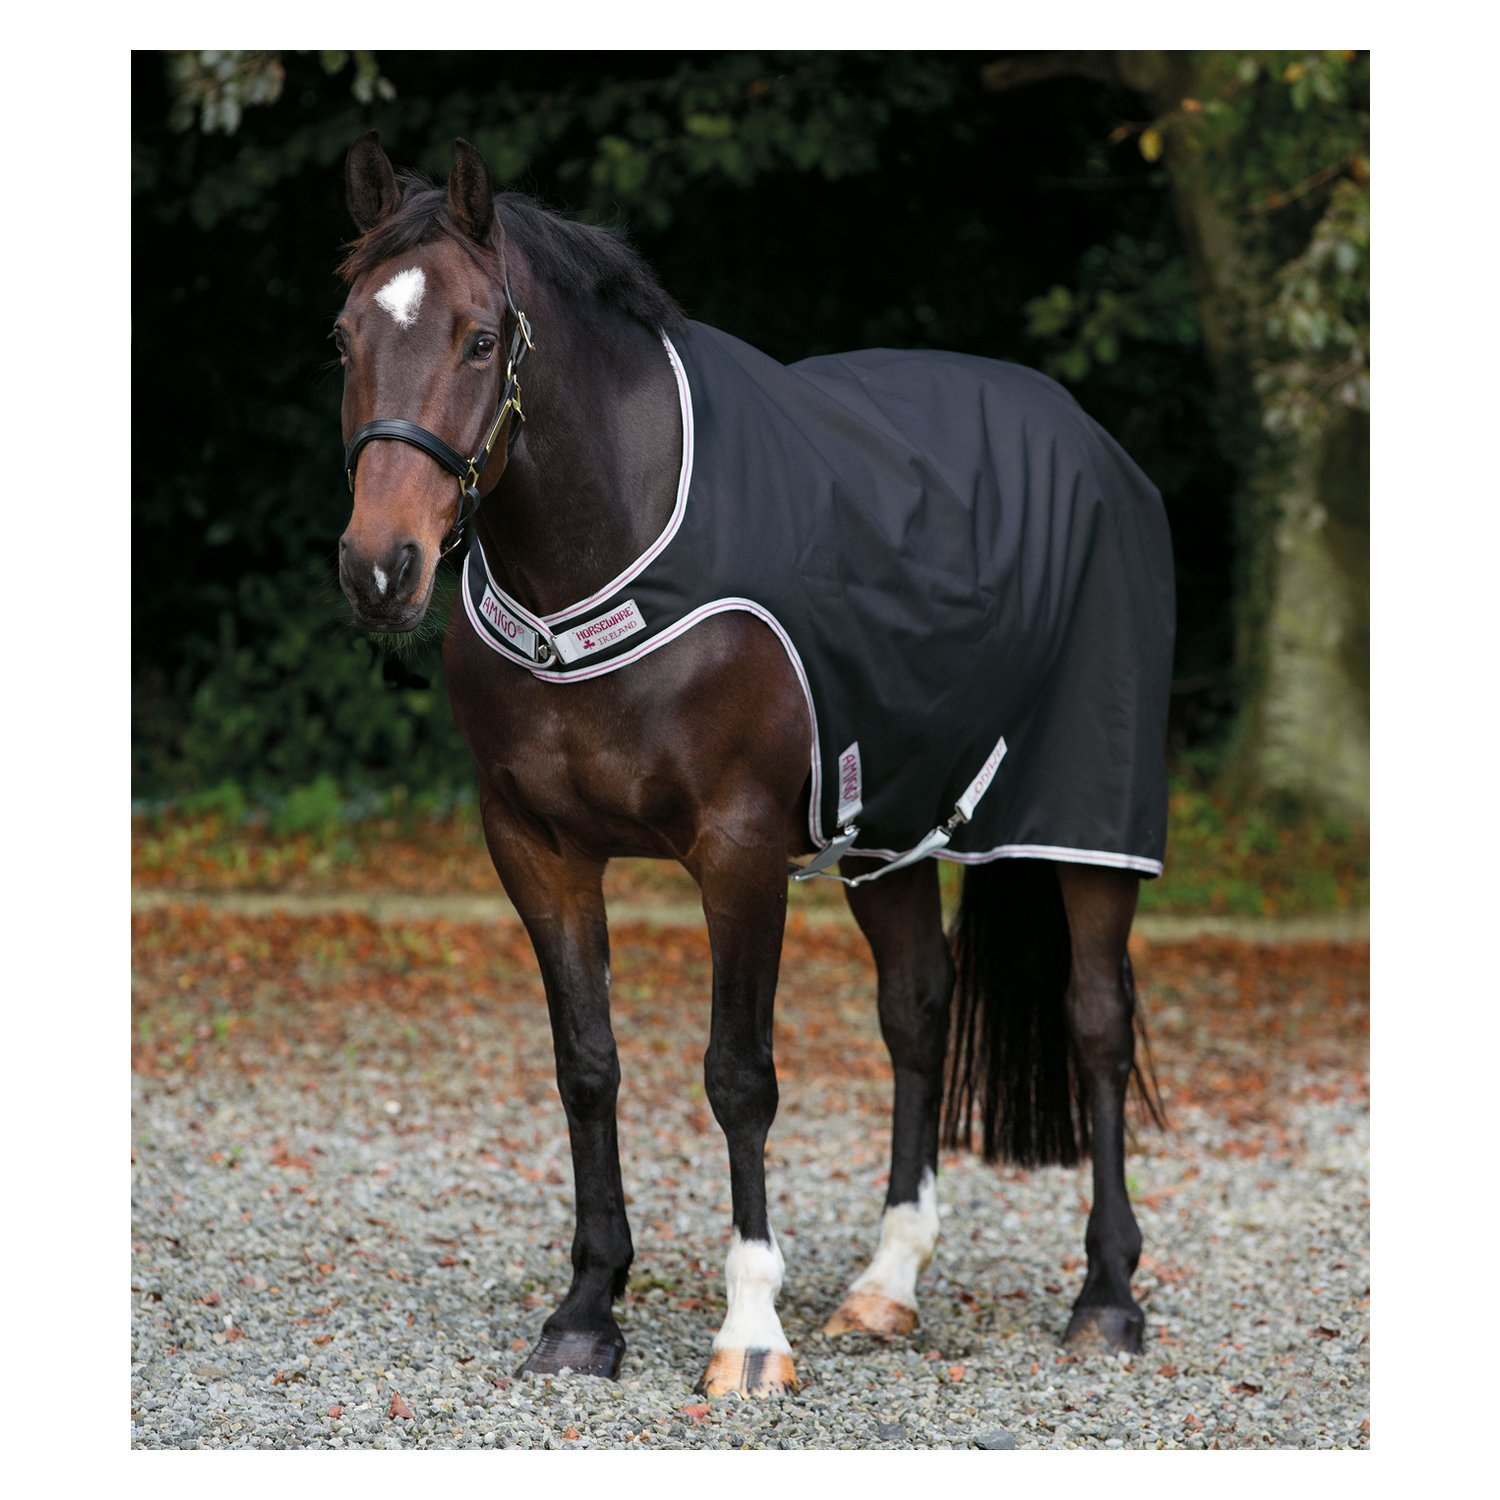 Horseware Führmaschinendecke AMIGO Waterproof Walker black | L (145/155 cm)